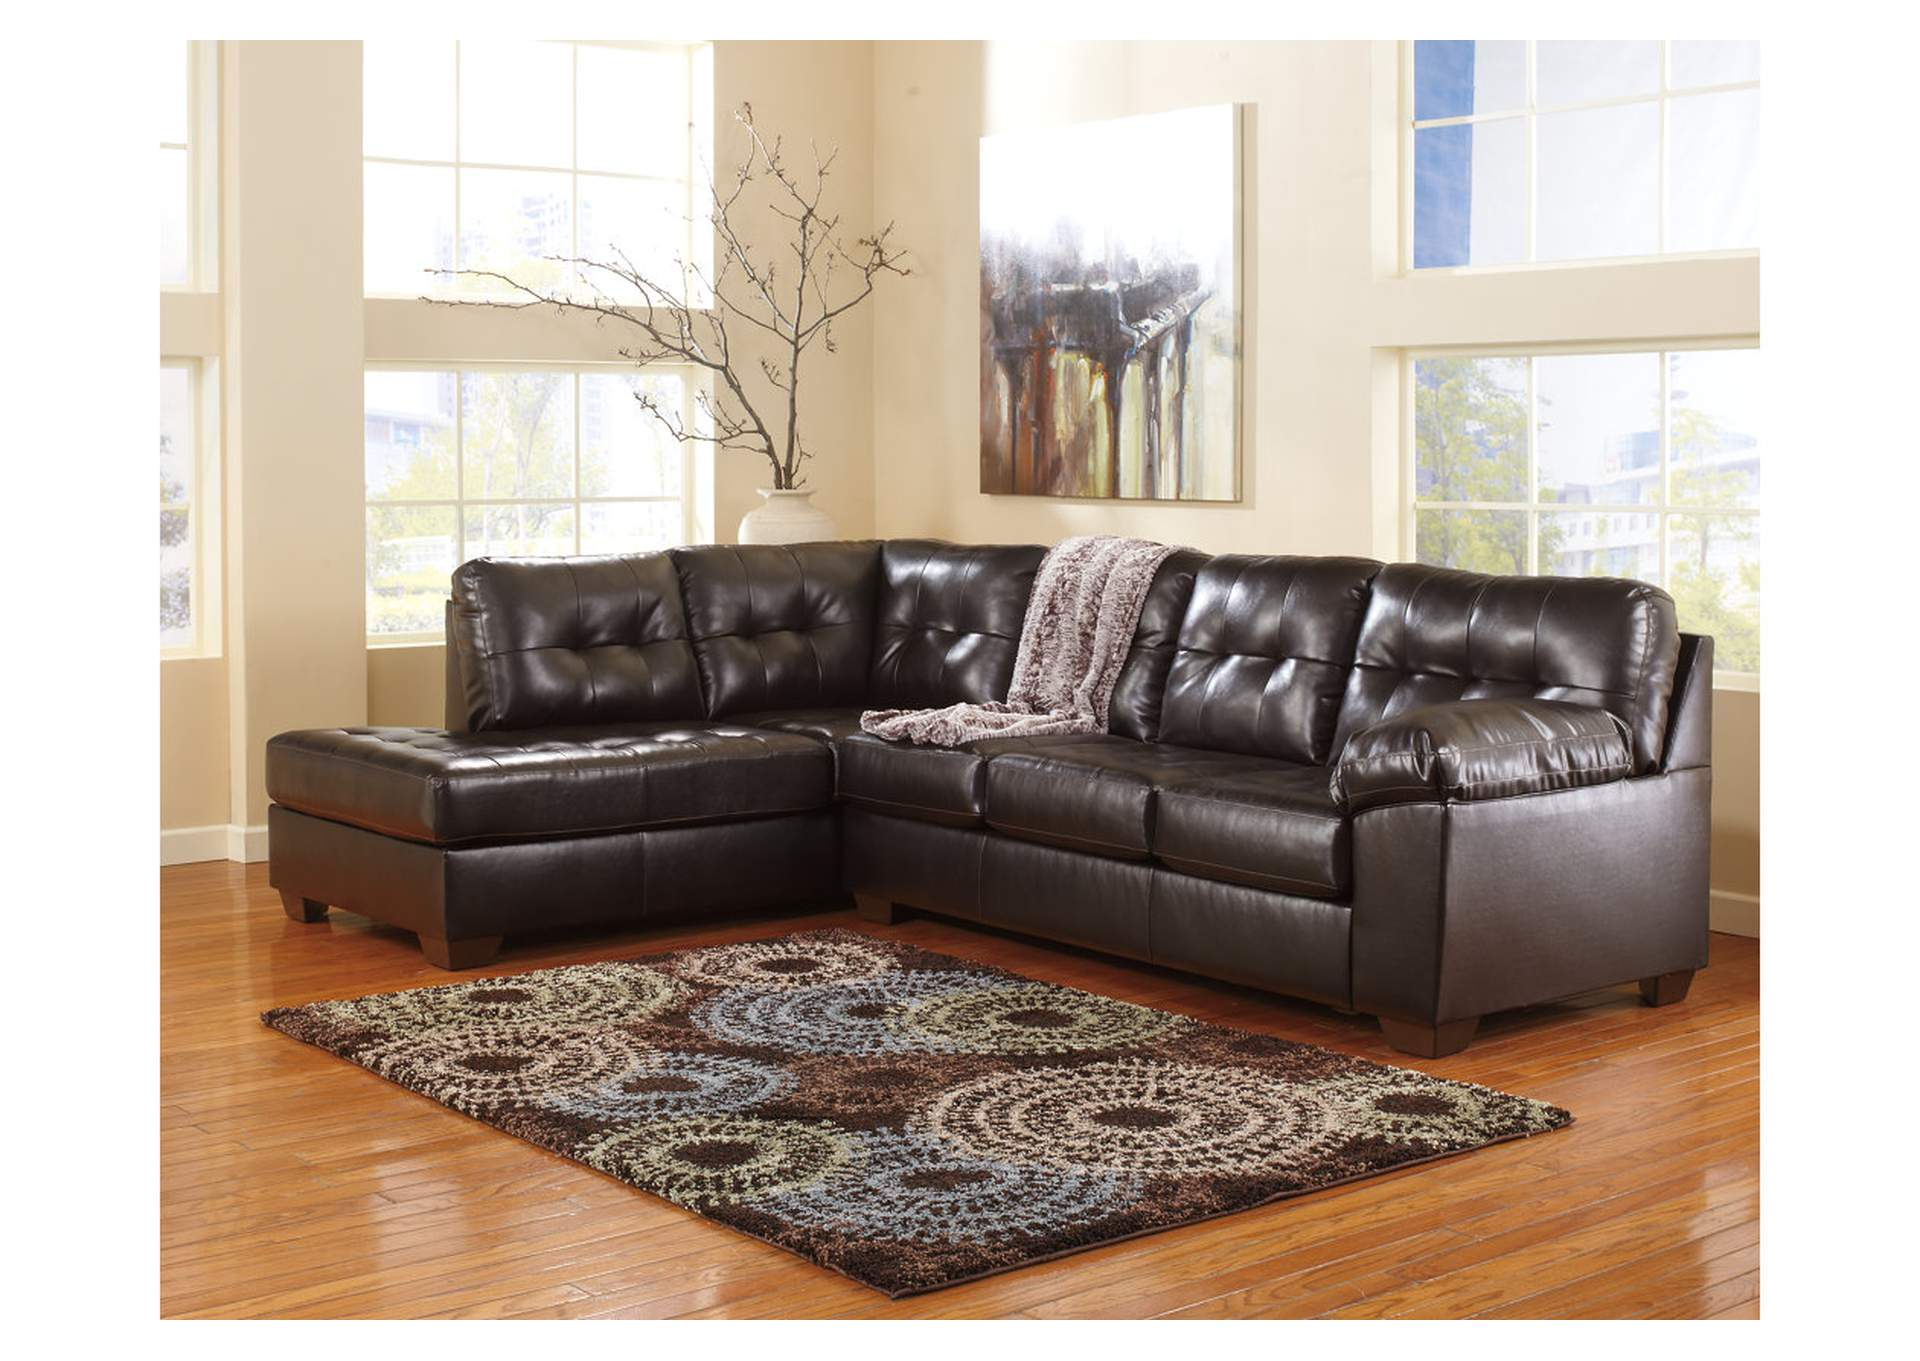 Alliston DuraBlend Chocolate Left Facing Chaise End Sectional,Signature Design By Ashley